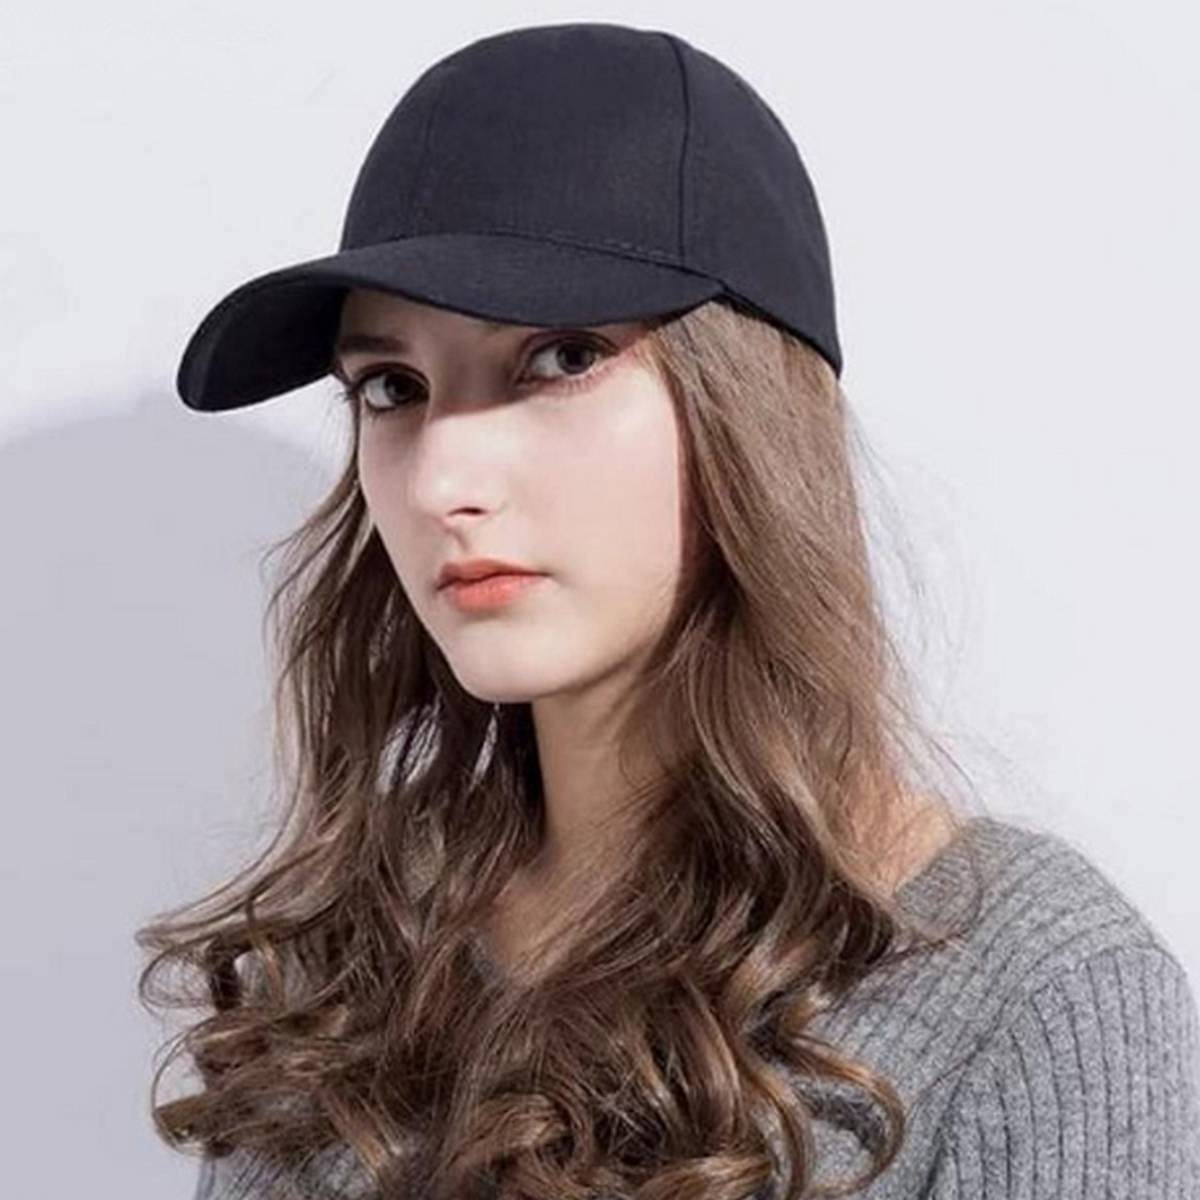 Baseball Sun Hat for Men Caps with Adjustable Strap and Curved Brim